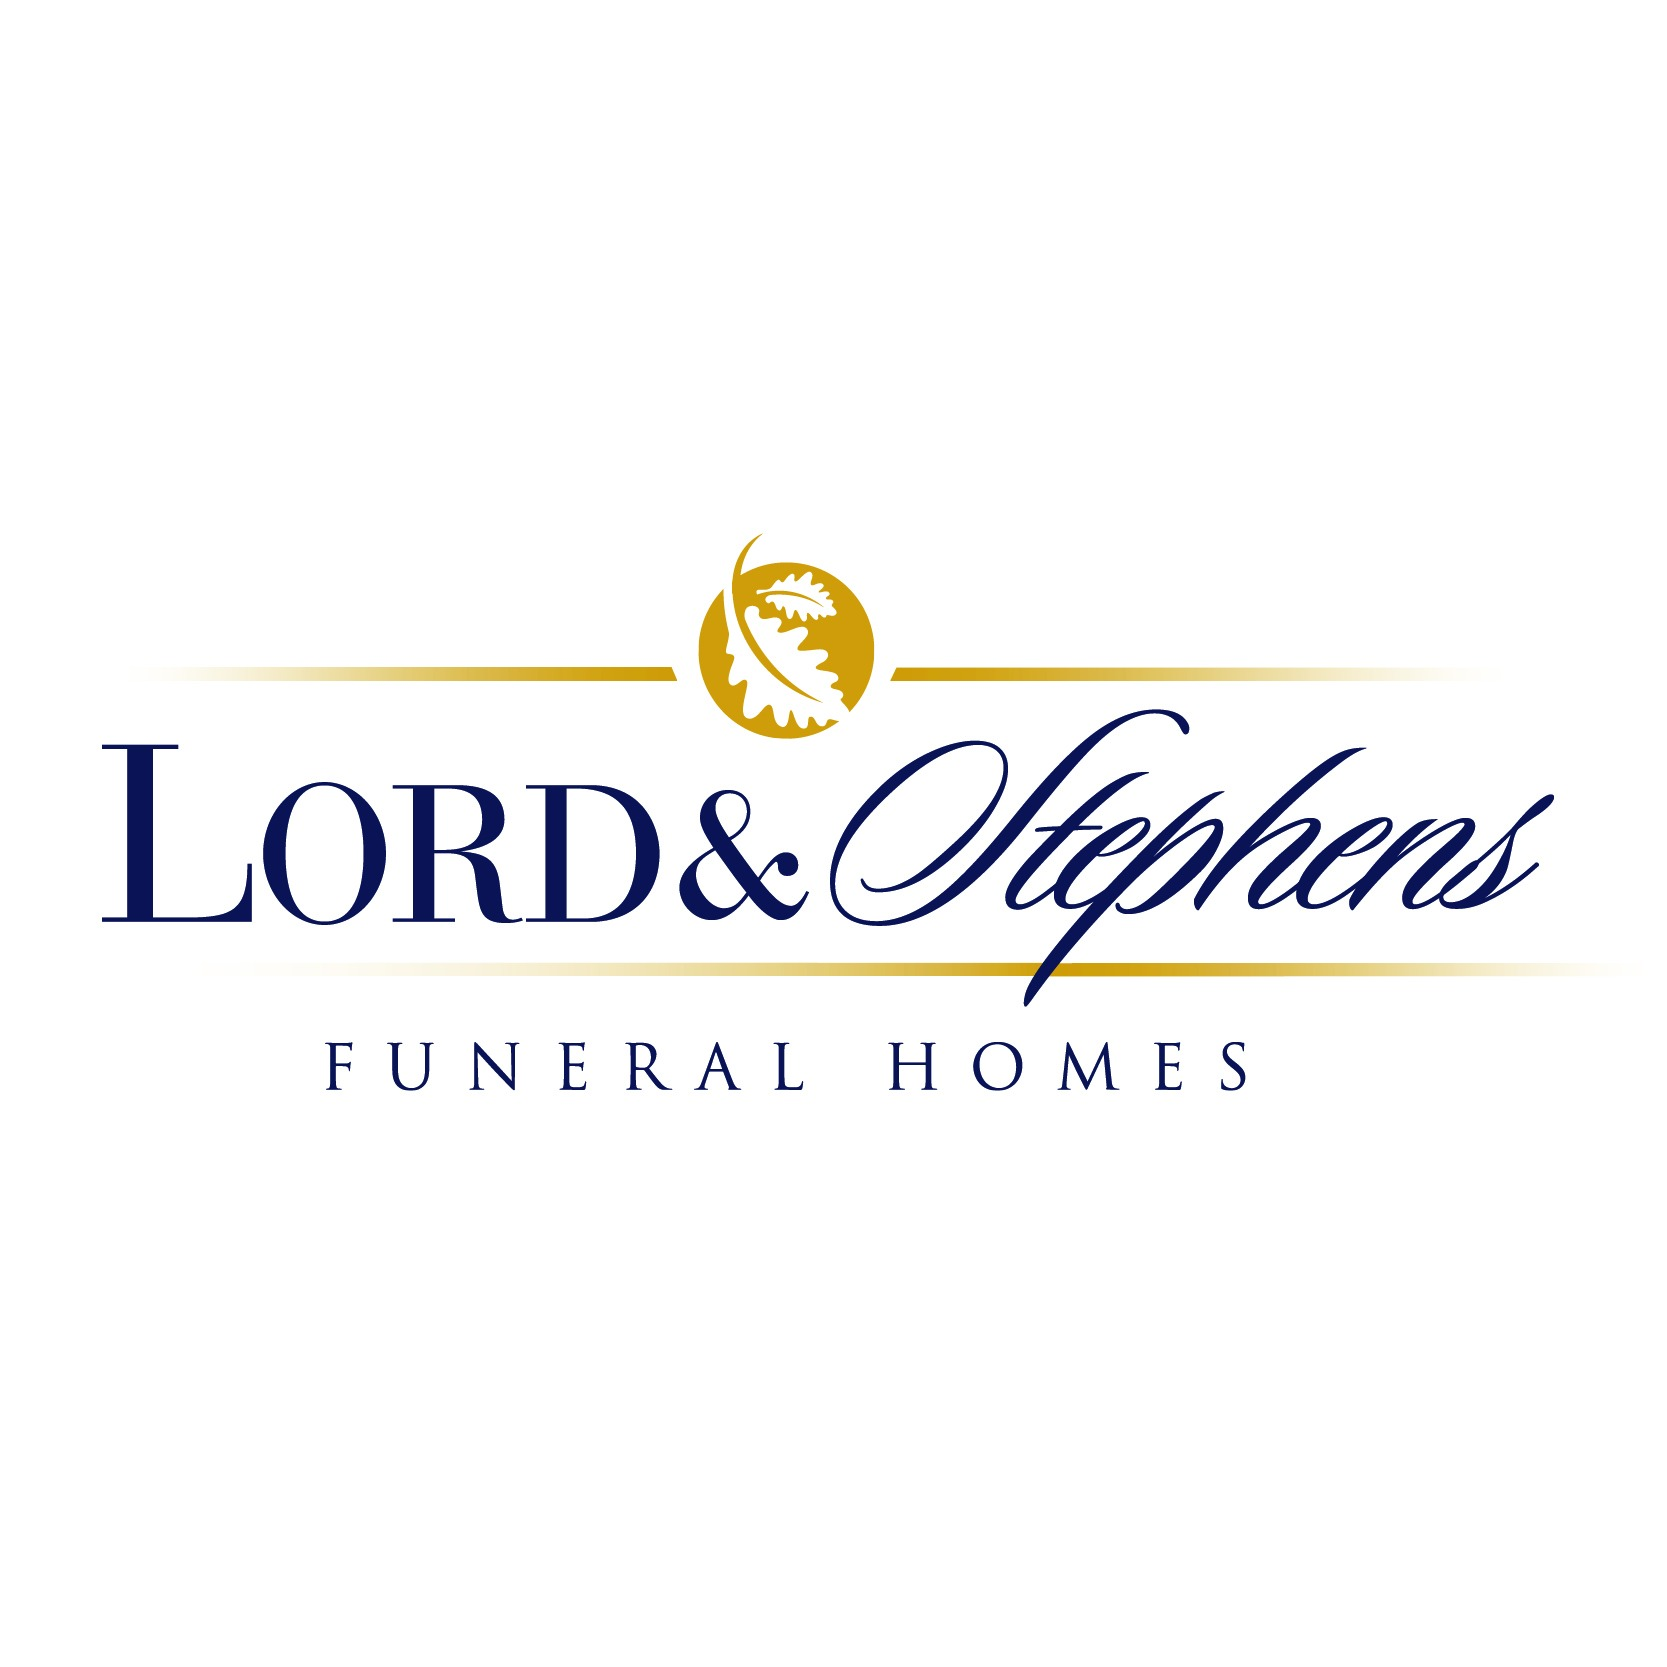 Lord & Stephens Funeral Homes - Danielsville, GA 30633 - (706)795-5116 | ShowMeLocal.com